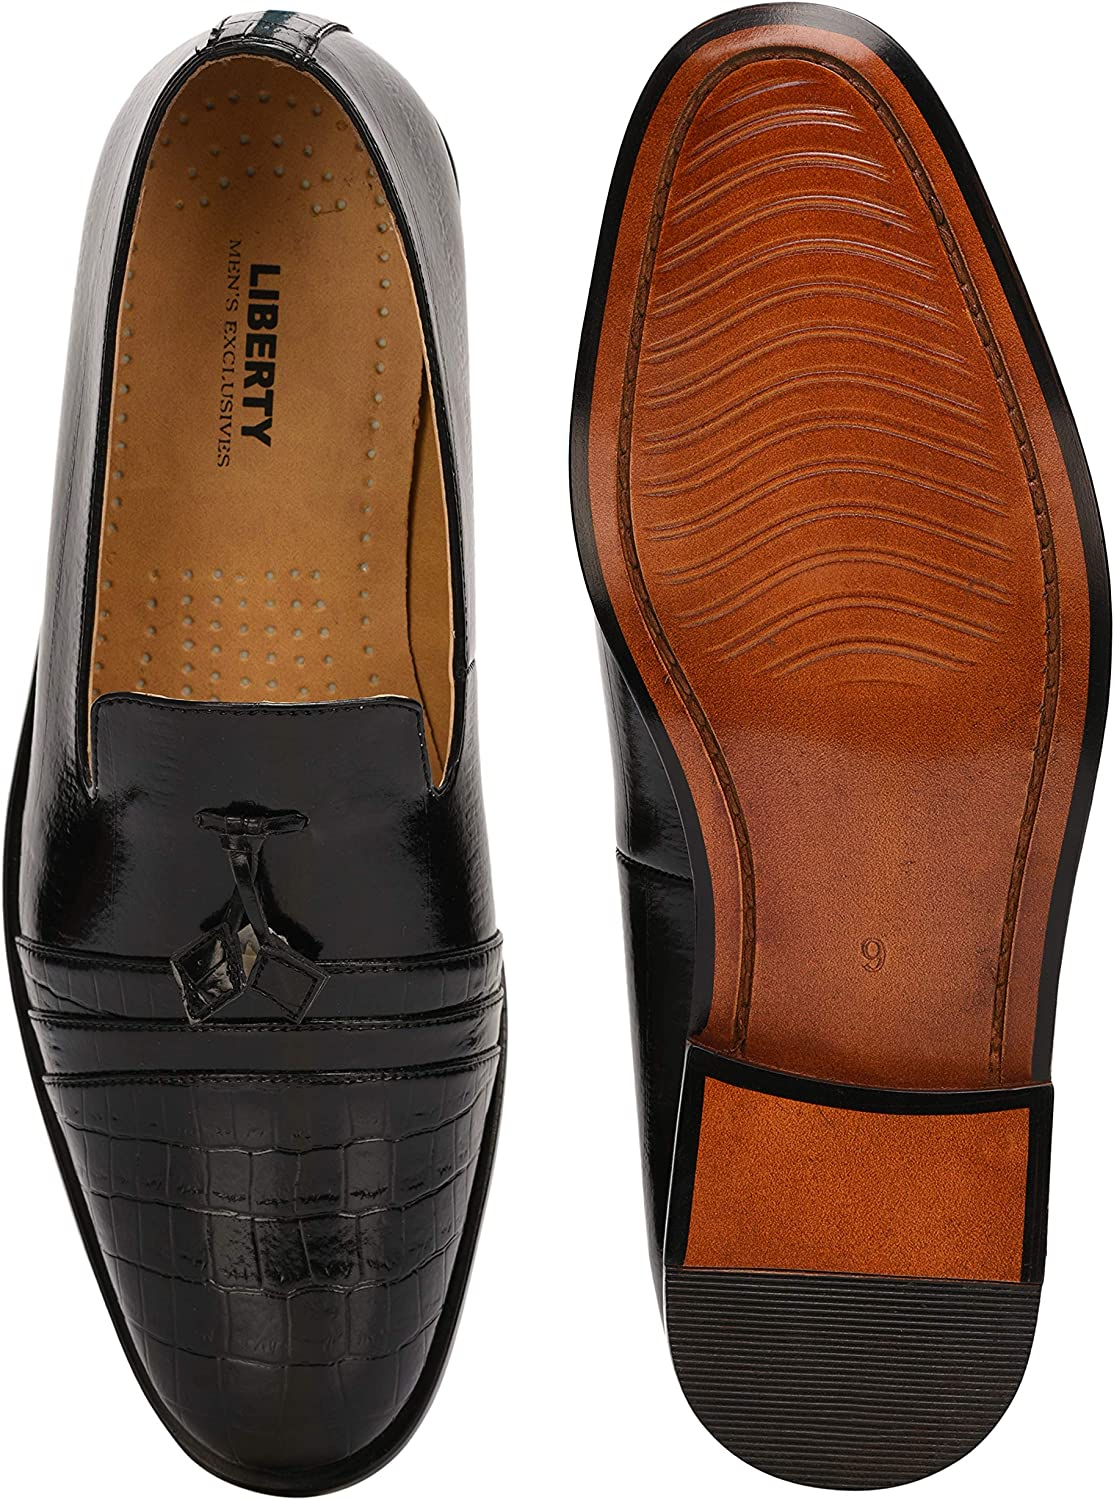 Liberty Footwear LIBERTYZENO Slip-On for Mens//Big Boys PU Leather Cushioned Footbed Tassels Loafer Shoes